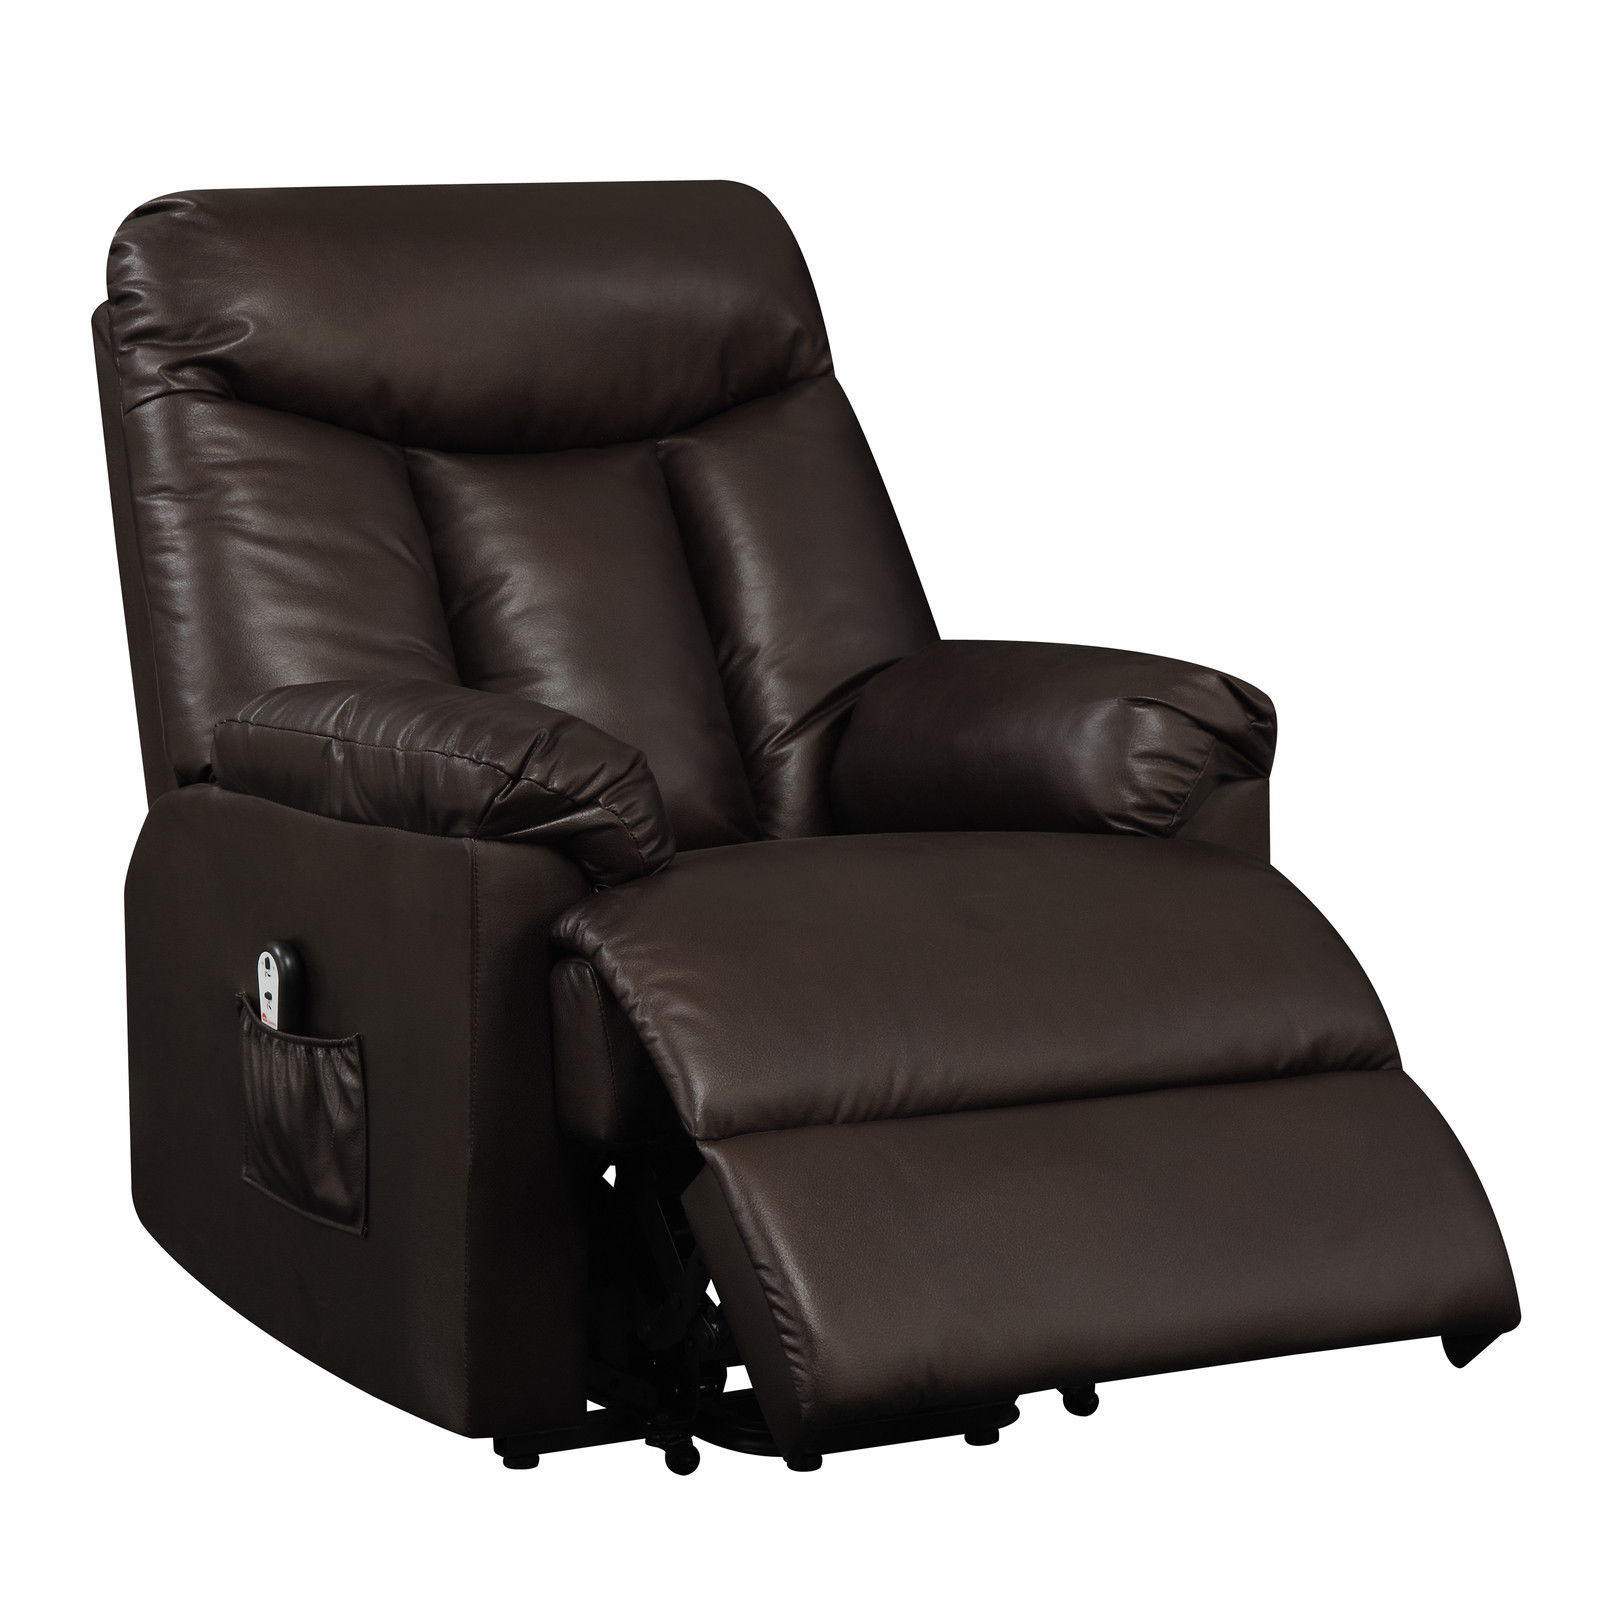 Electric lift chair recliner brown leather power motion for Recliner lift chair